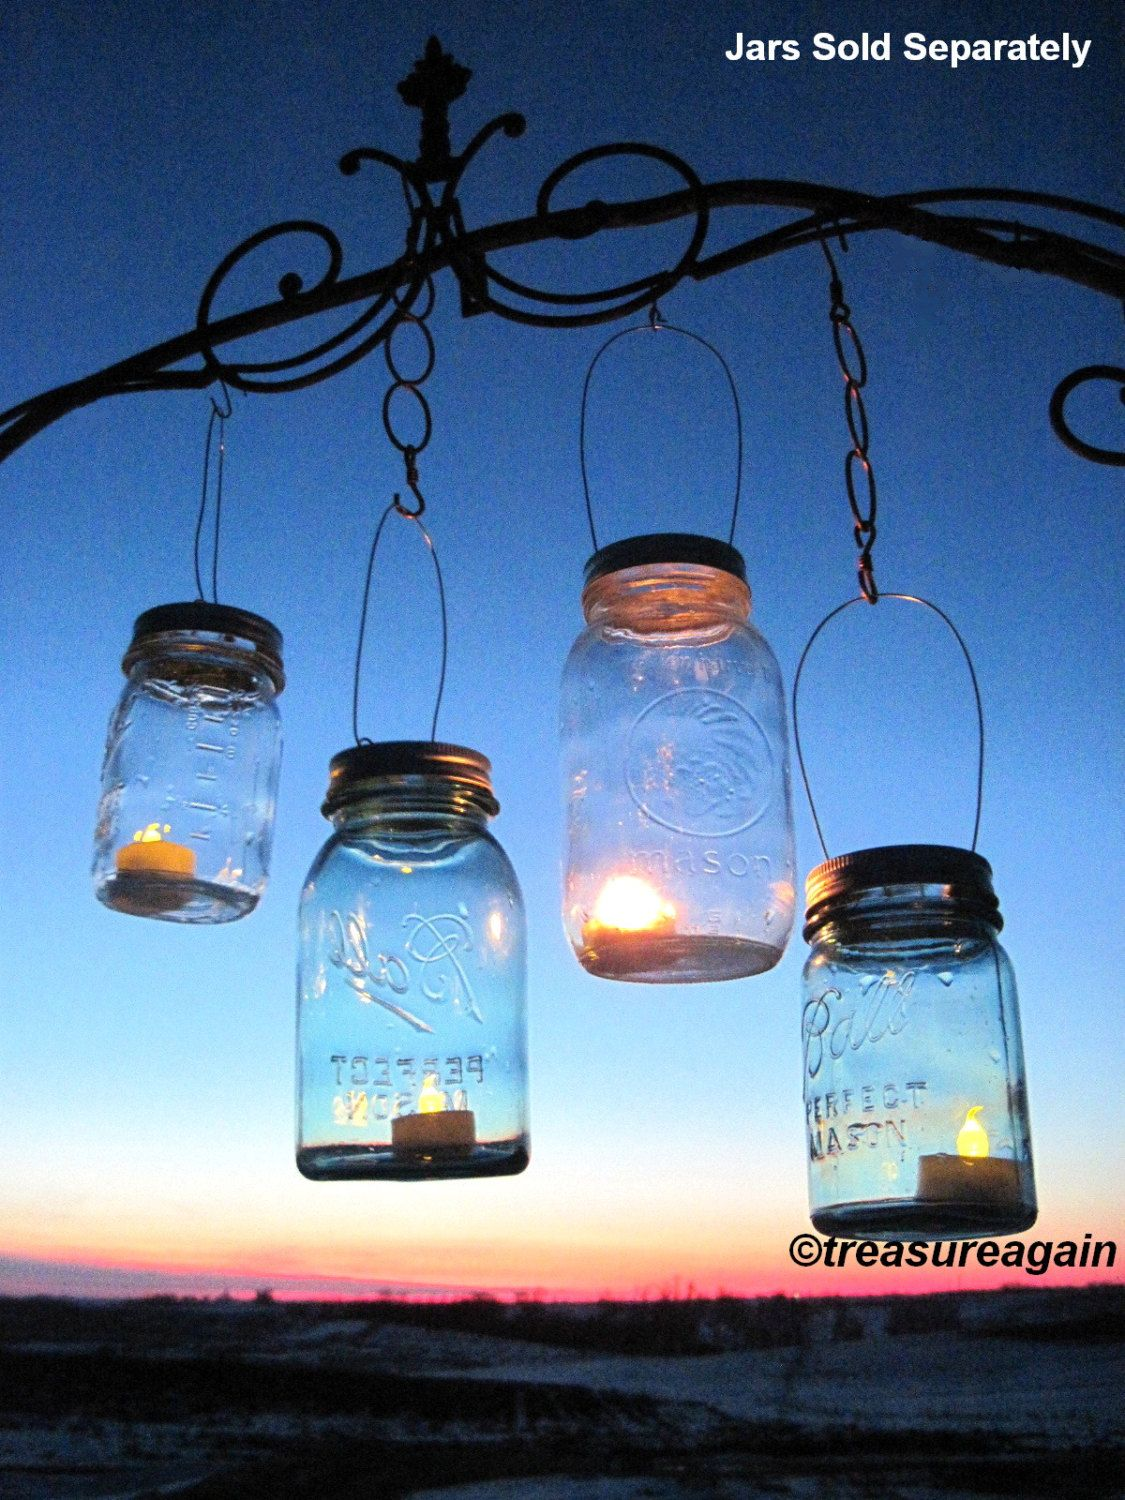 Mason jar lantern lid diy hanging candle lanterns outdoor lighting mason jar lantern lid diy hanging candle lanterns outdoor lighting as seen on fly away book luminary mason jar lids with handles only aloadofball Image collections